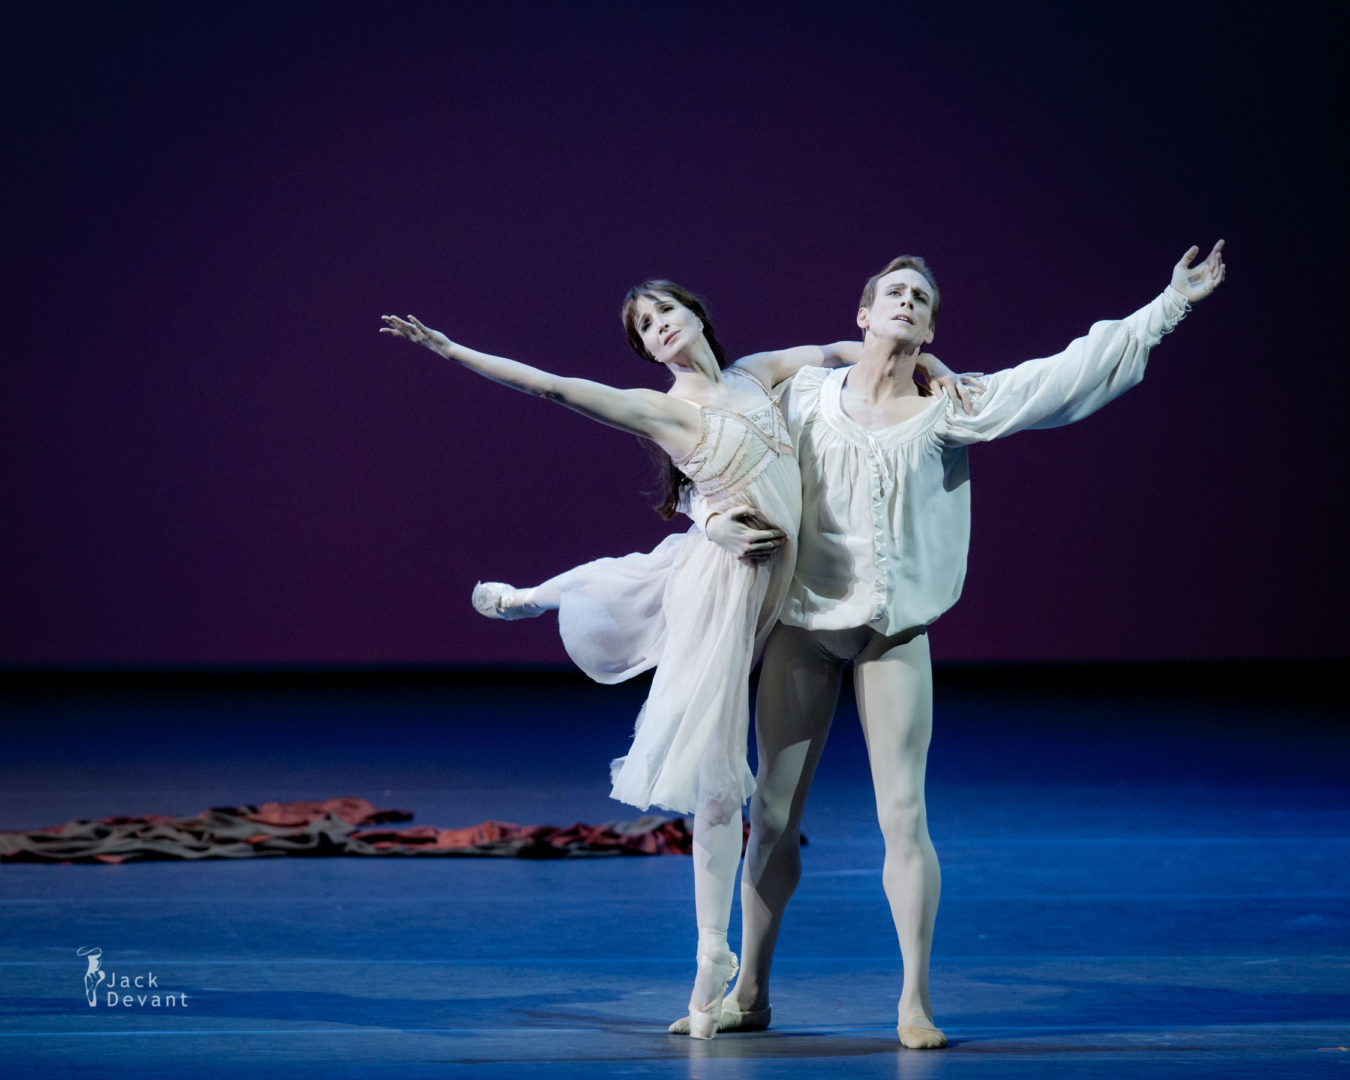 Lauren Cuthbertson and Edward Watson in Romeo and Juliet, music by Sergei Prokofiev, choreography by Kenneth MacMillan